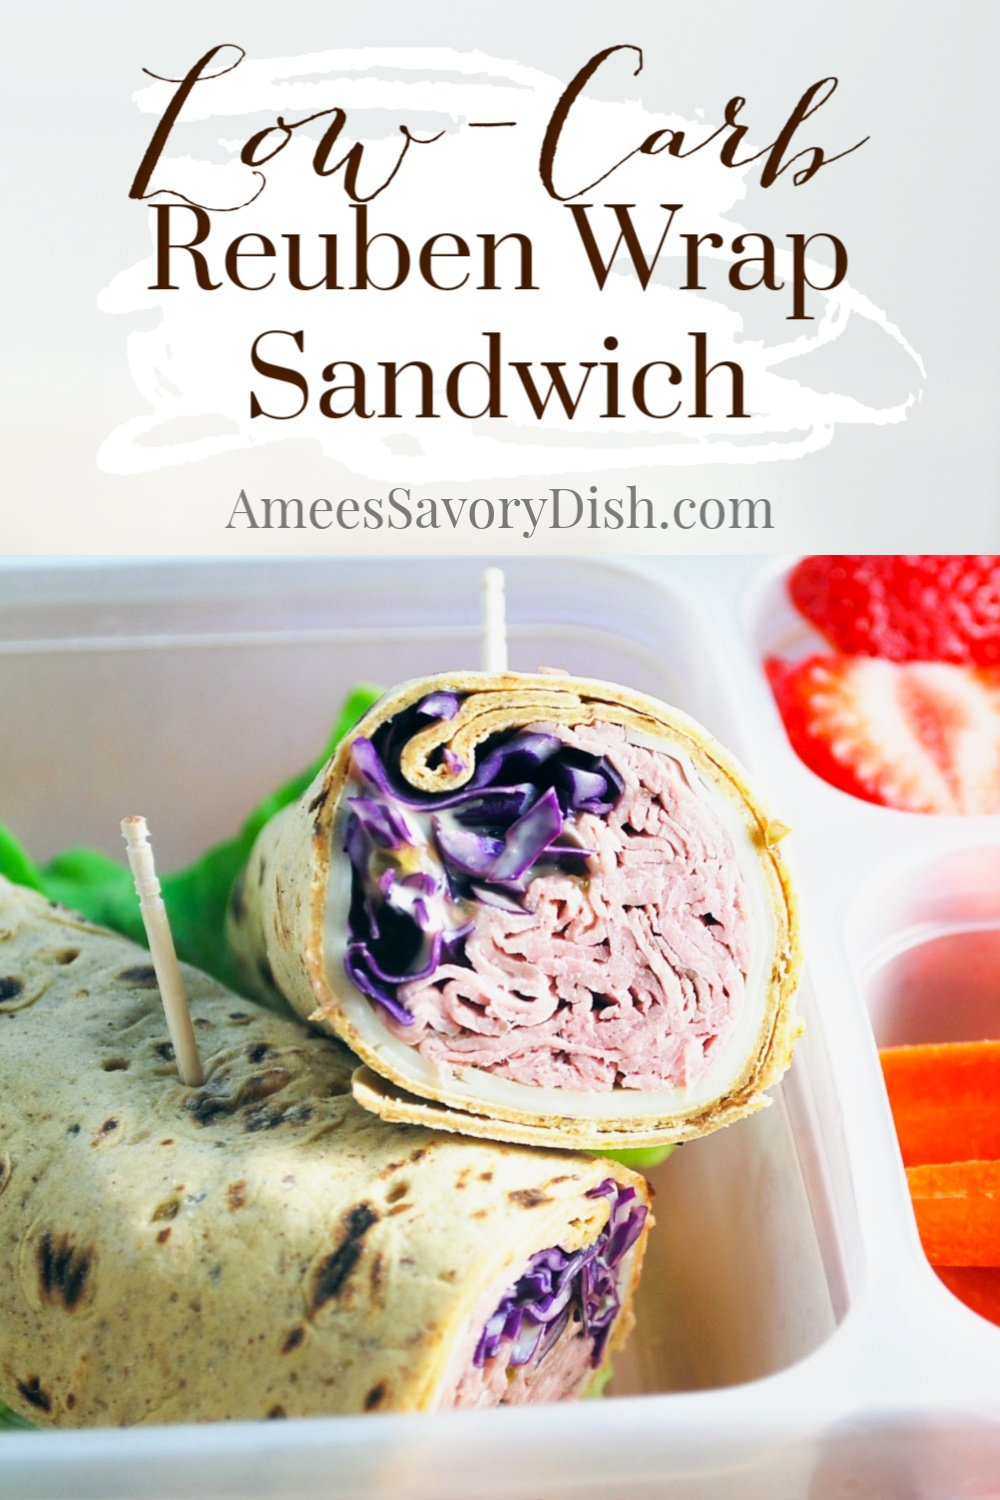 A simple and easy light Reuben wrap sandwich recipe made with sliced deli roast beef, baby swiss cheese, red cabbage, homemade thousand island dressing rolled up in a high fiber wrap.  This protein-packed recipe is perfect for lunch meal prep! via @Ameessavorydish